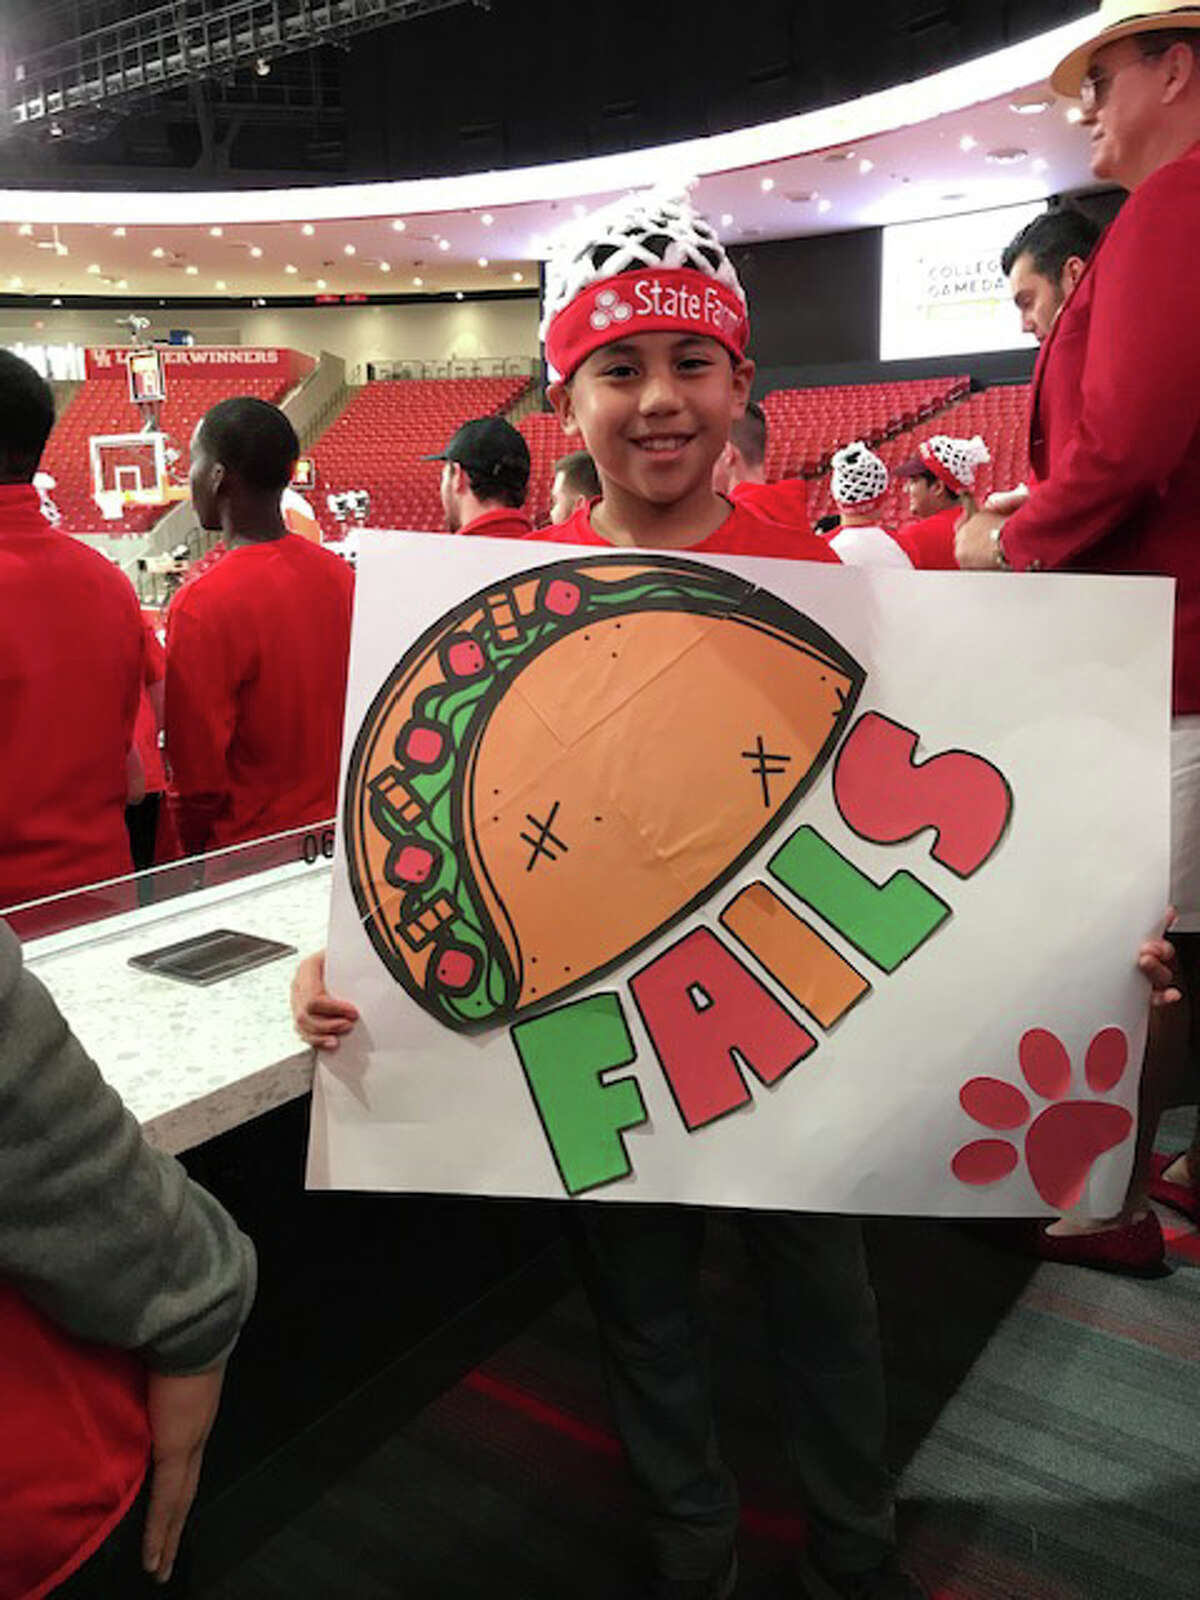 Houston fans show off their clever signs before Saturday's tipoff against Central Florida. ESPN College GameDay, the popular pregame college basketball show, made its first visit to the redesigned Fertitta Center on Saturday, March 2, 2019.